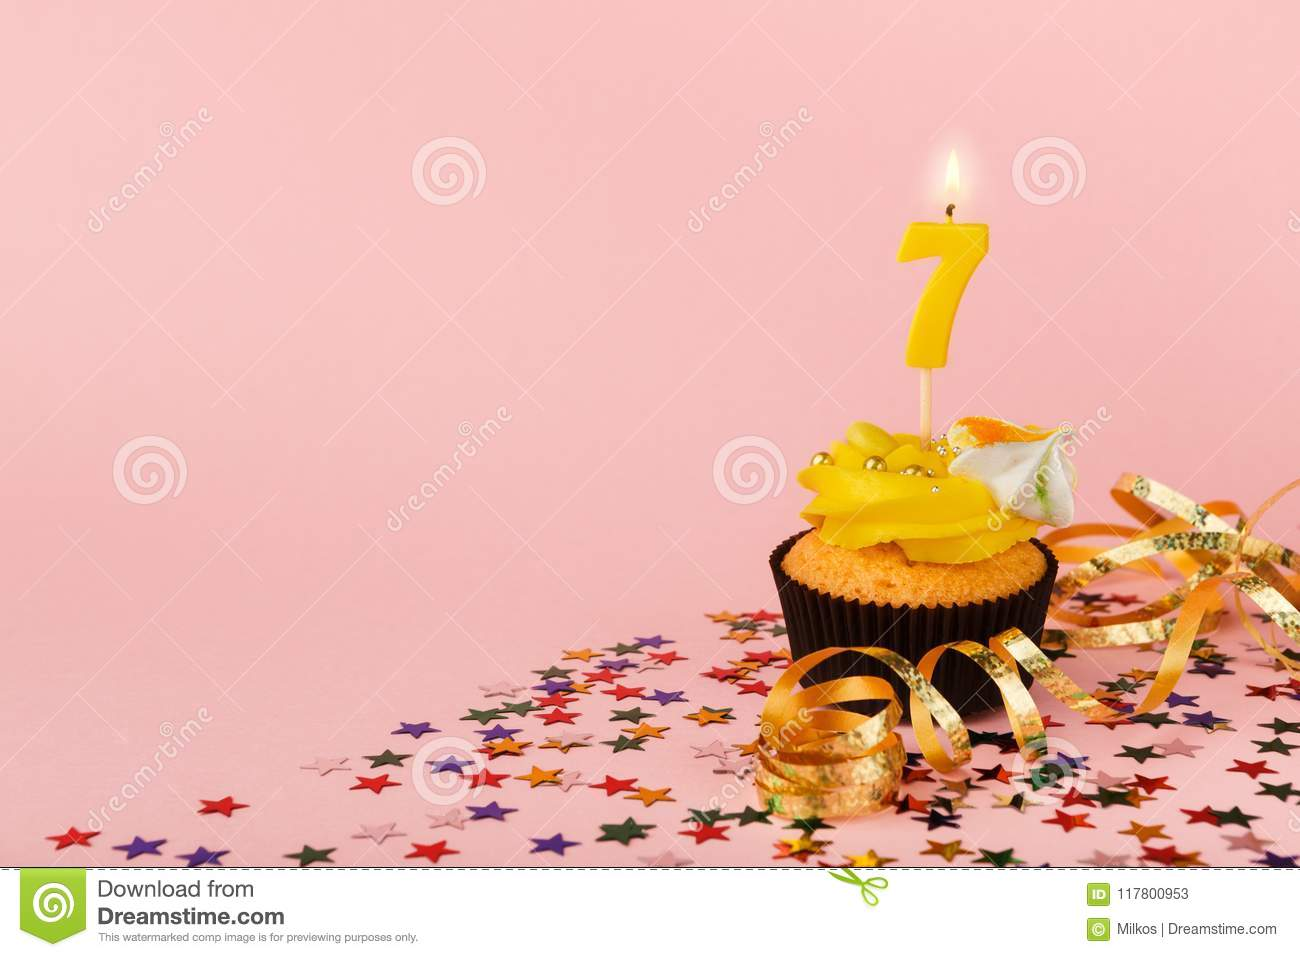 Seventh Birthday Cupcake With Candle And Sprinkles